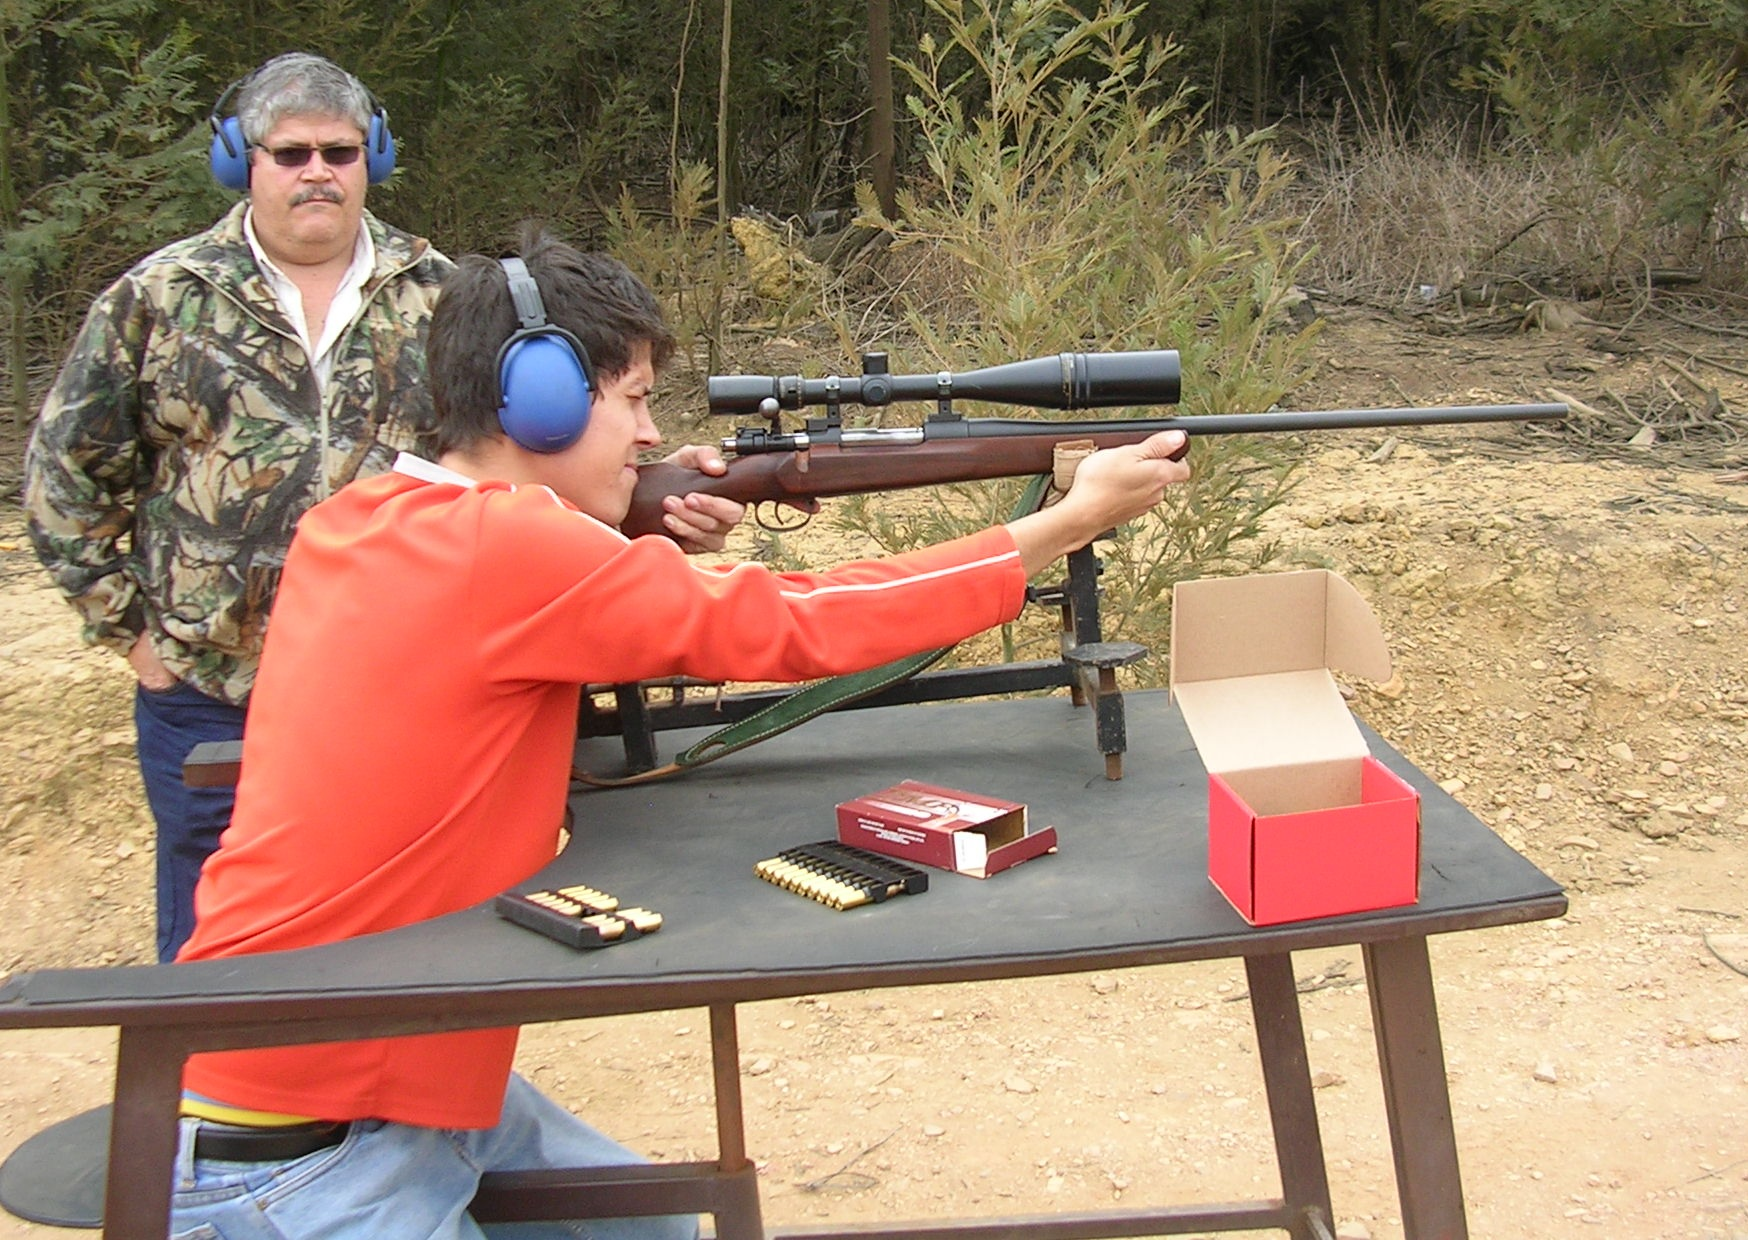 images details benchrest name winchester auction bench time full size rest view end id model